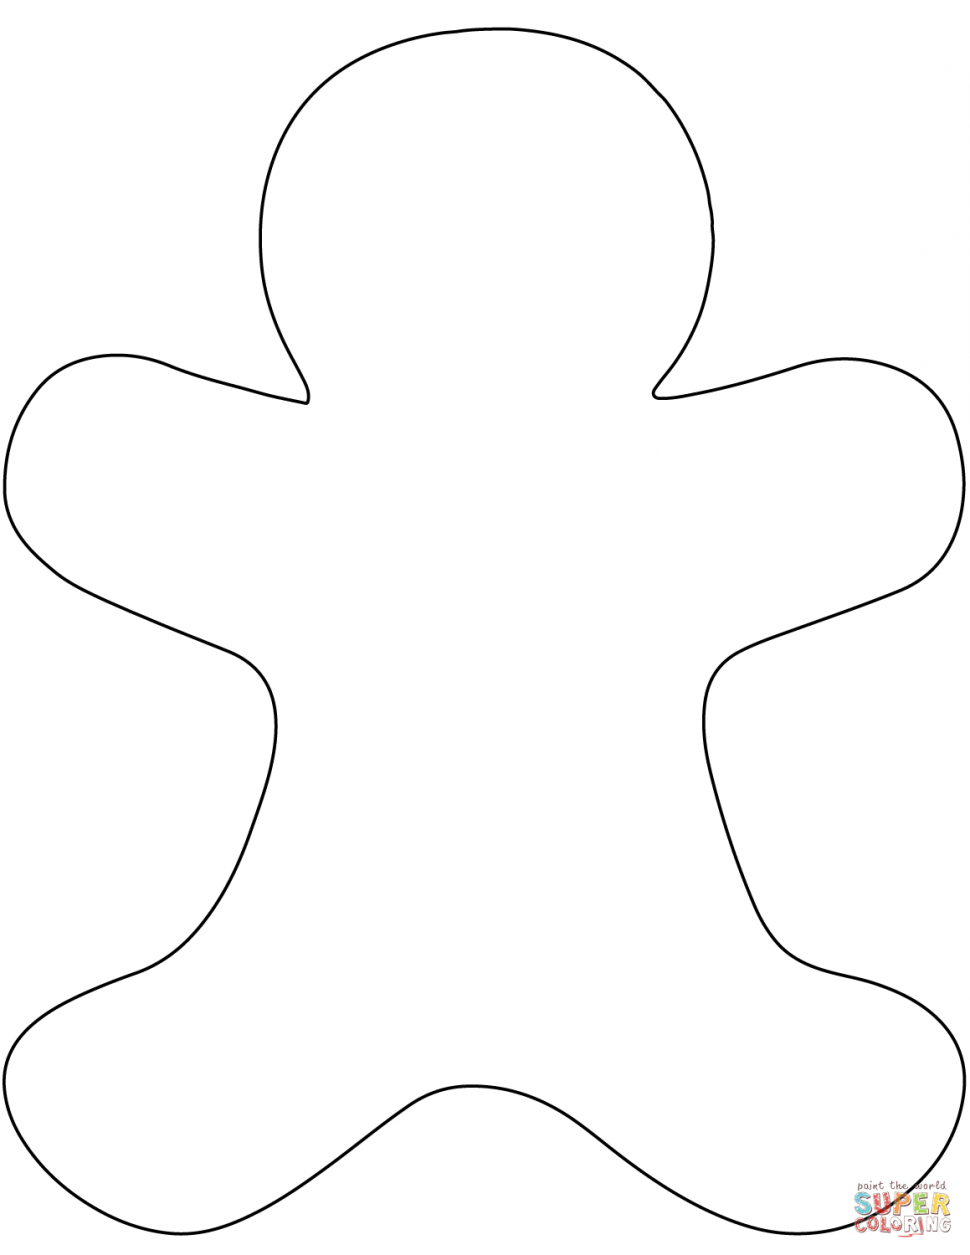 gingerbread outline printable 8 free printable large and small gingerbread man templates outline printable gingerbread